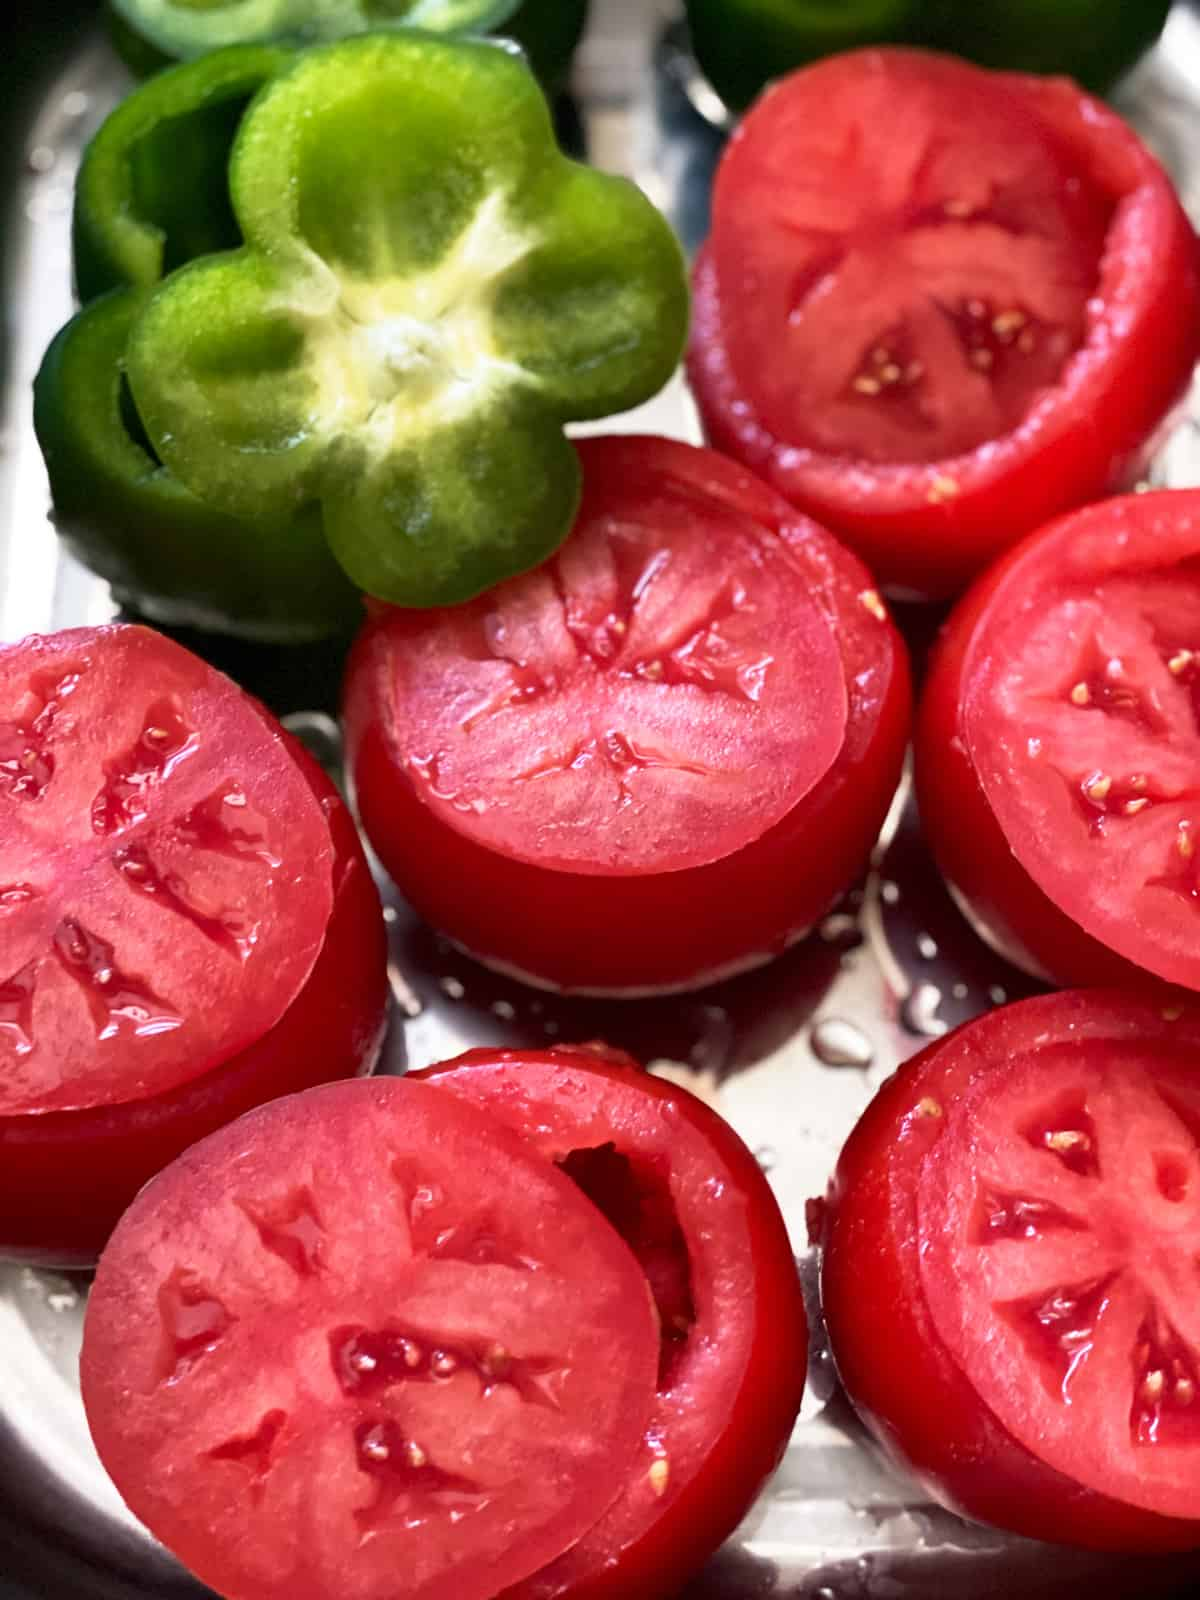 Tomatoes and green bell peppers with the tops cut, on top of each one.